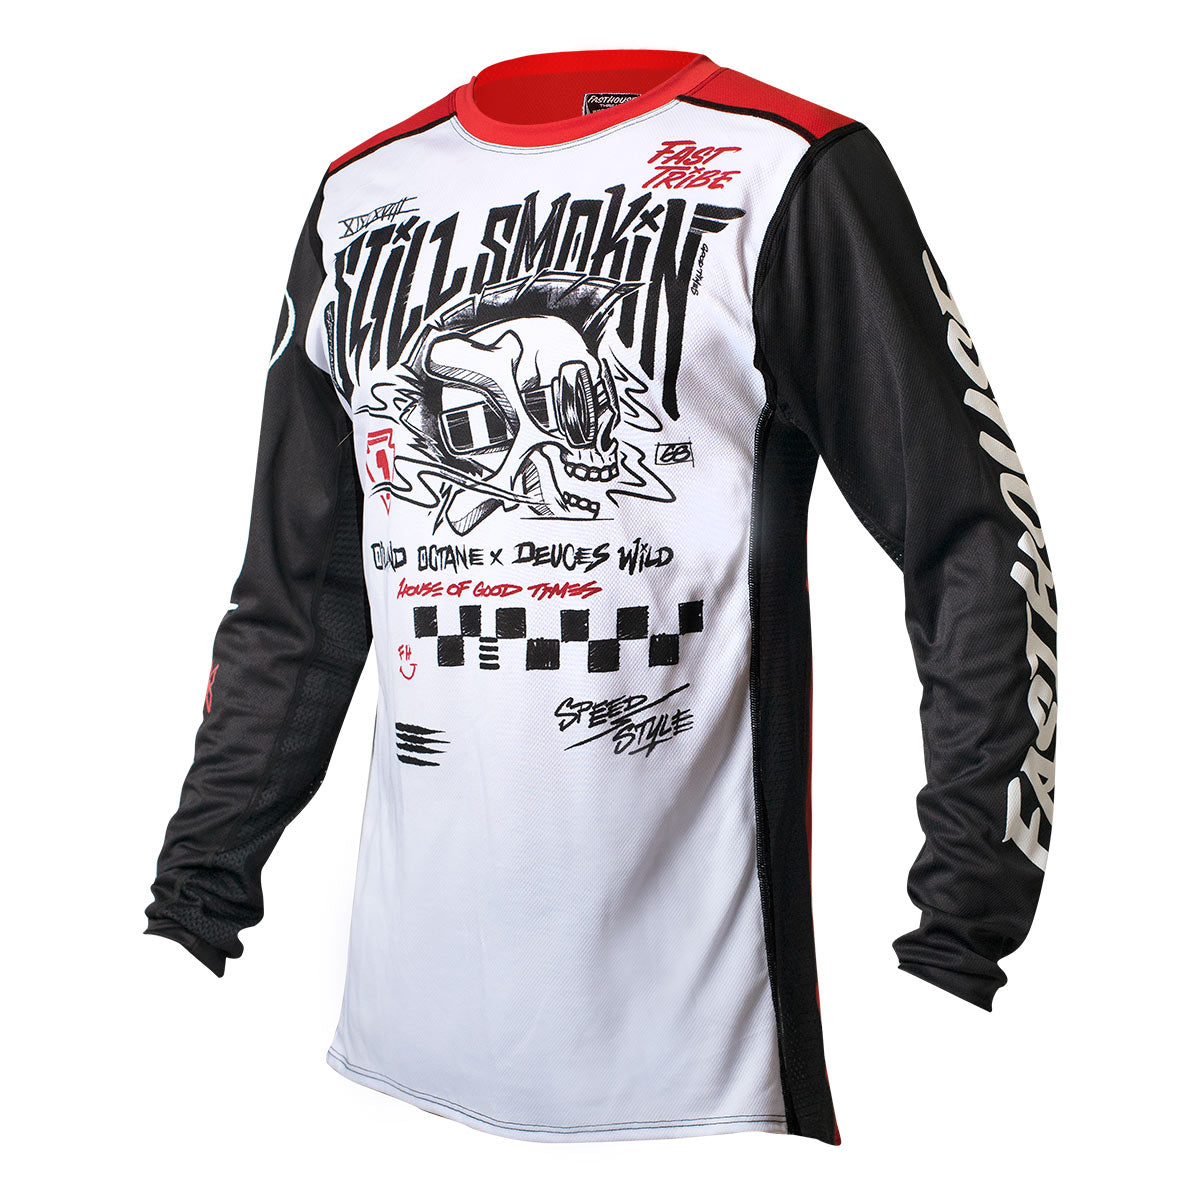 Still Smokin '21 Jersey - White/Red